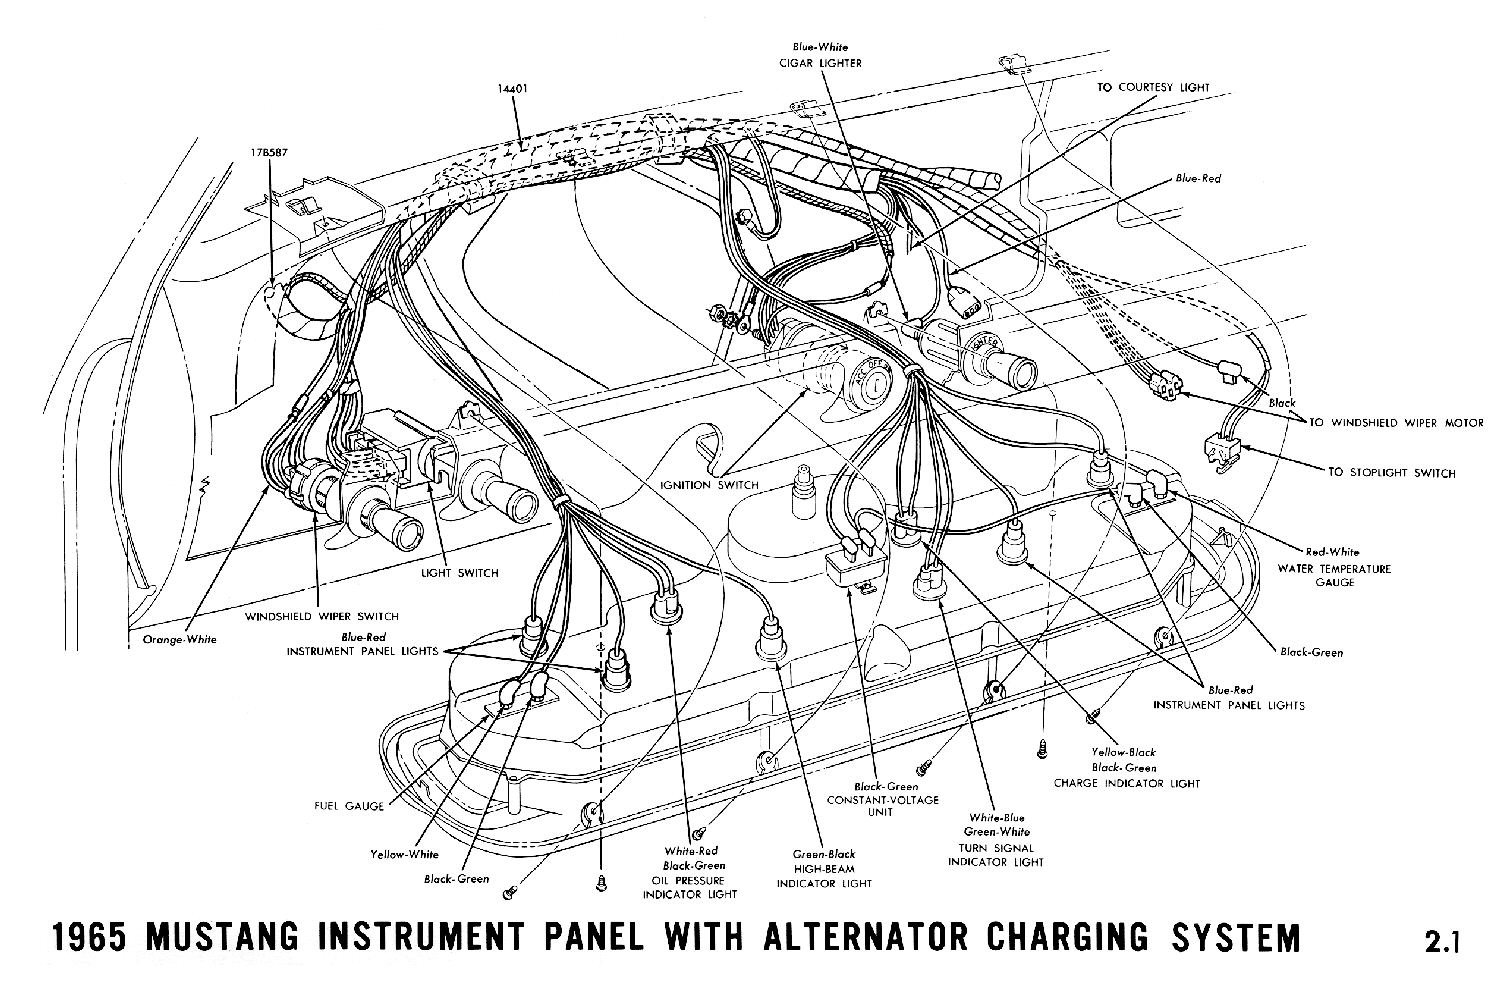 wiring diagram for dash gauges 69 w30 wiring diagram for mercury outboard gauges fuse block on a 1965 mustang coupe - ford mustang forum #15